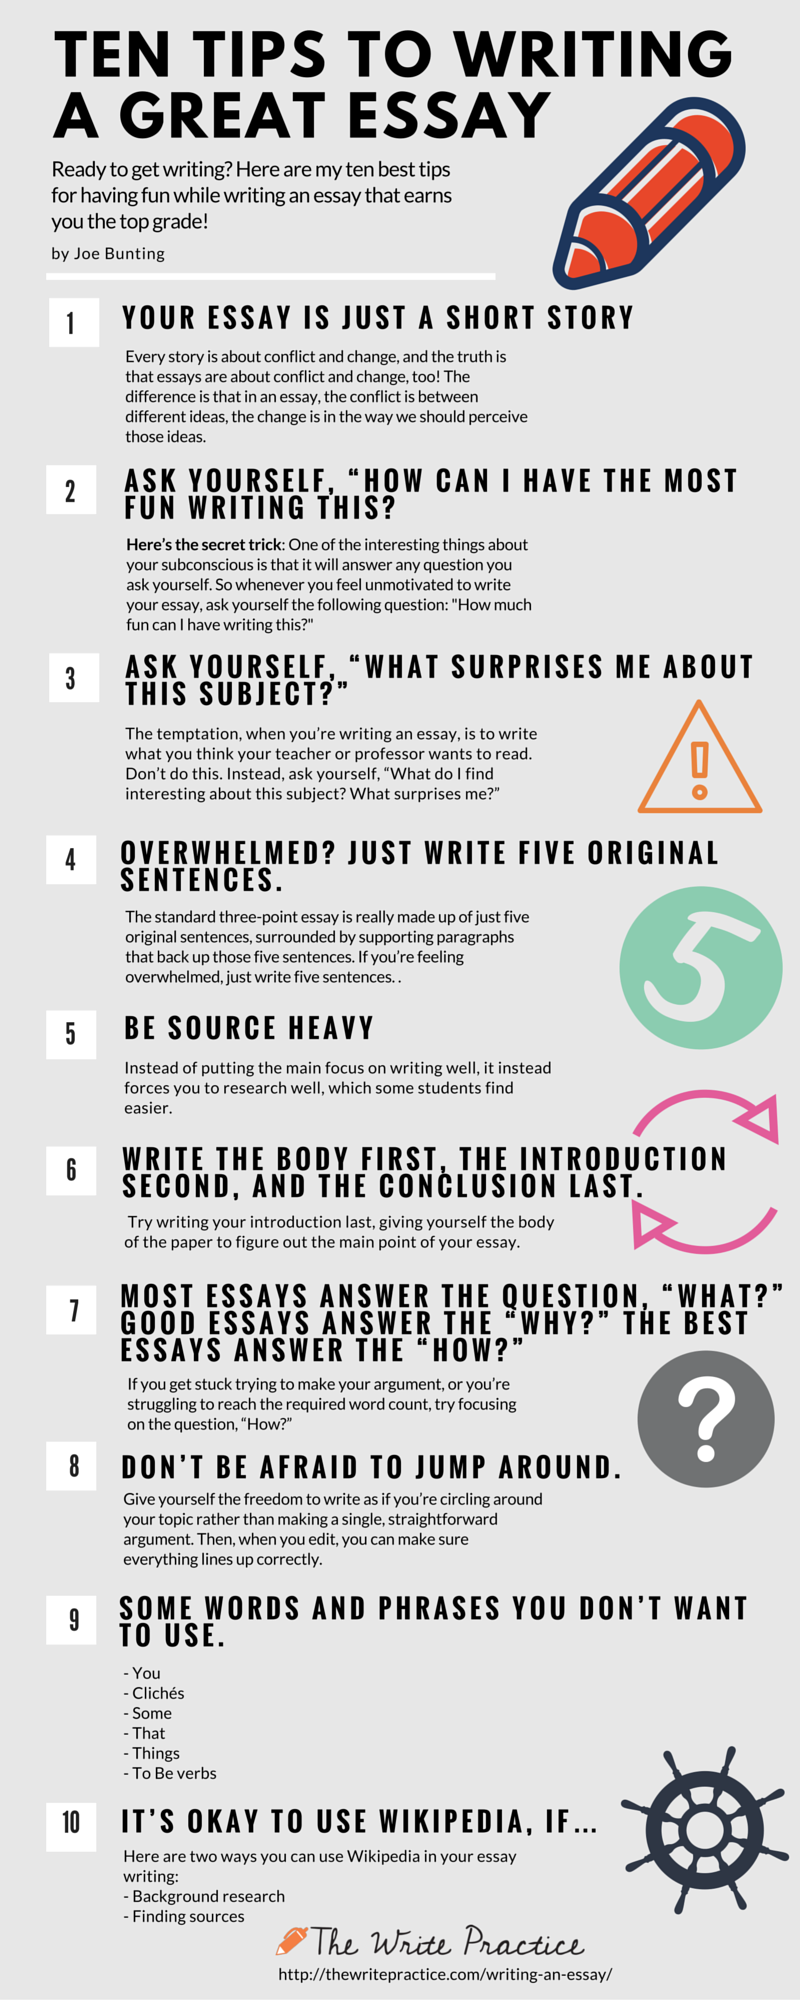 012 Essay Example Tips For Writing An Essay1 Where Do You See Yourself In Sensational 10 Years Best Answer Medical School Full